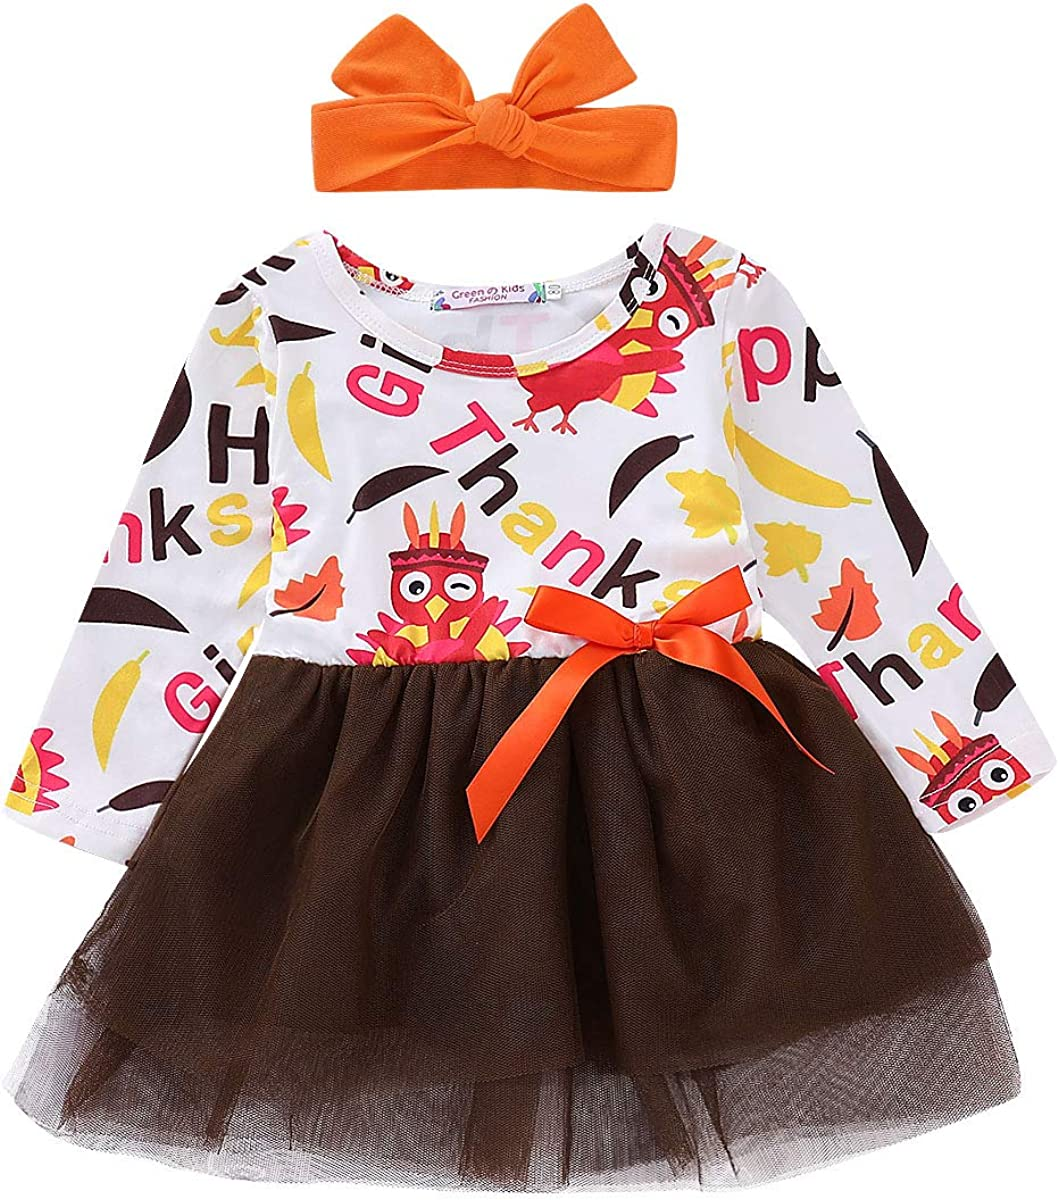 Headband MILWAY Kid Baby Girls Turkey Clothes Long Sleeve Tulle Tutu Dress Set